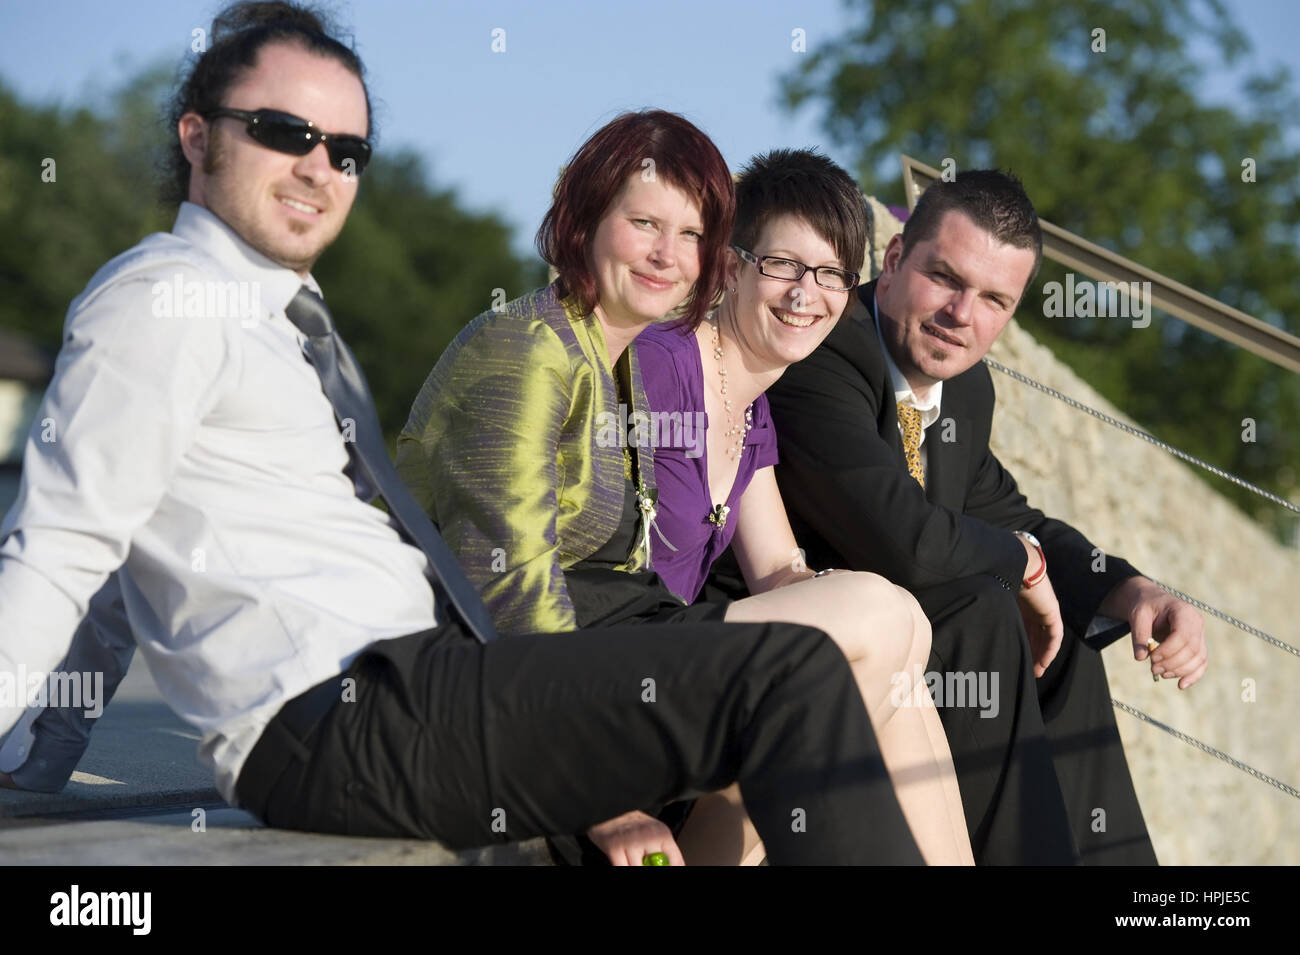 Model released , Junge Leute in der Sonne - young people on a sunny day - Stock Image